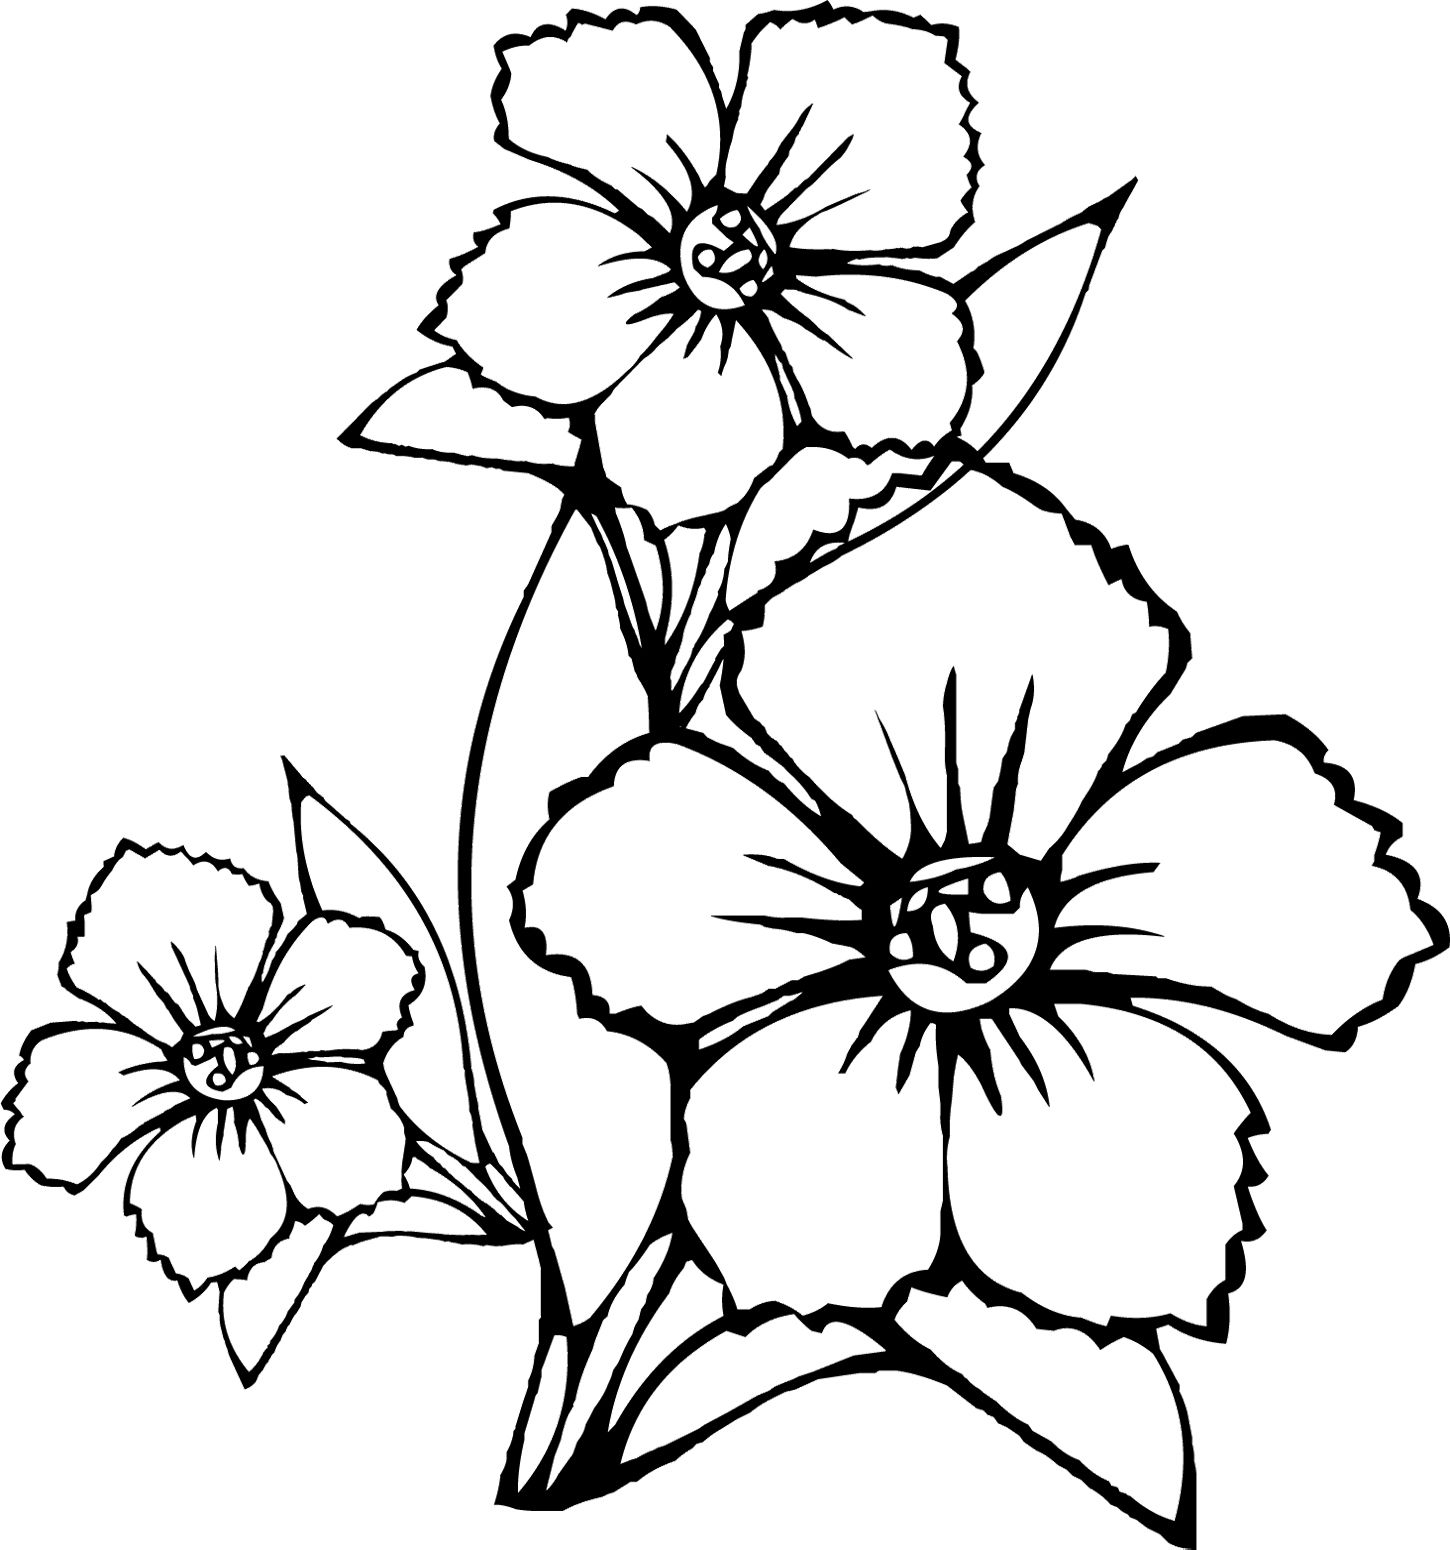 1450x1550 Awesome Free Hawaiian Flower Coloring Pages To Print